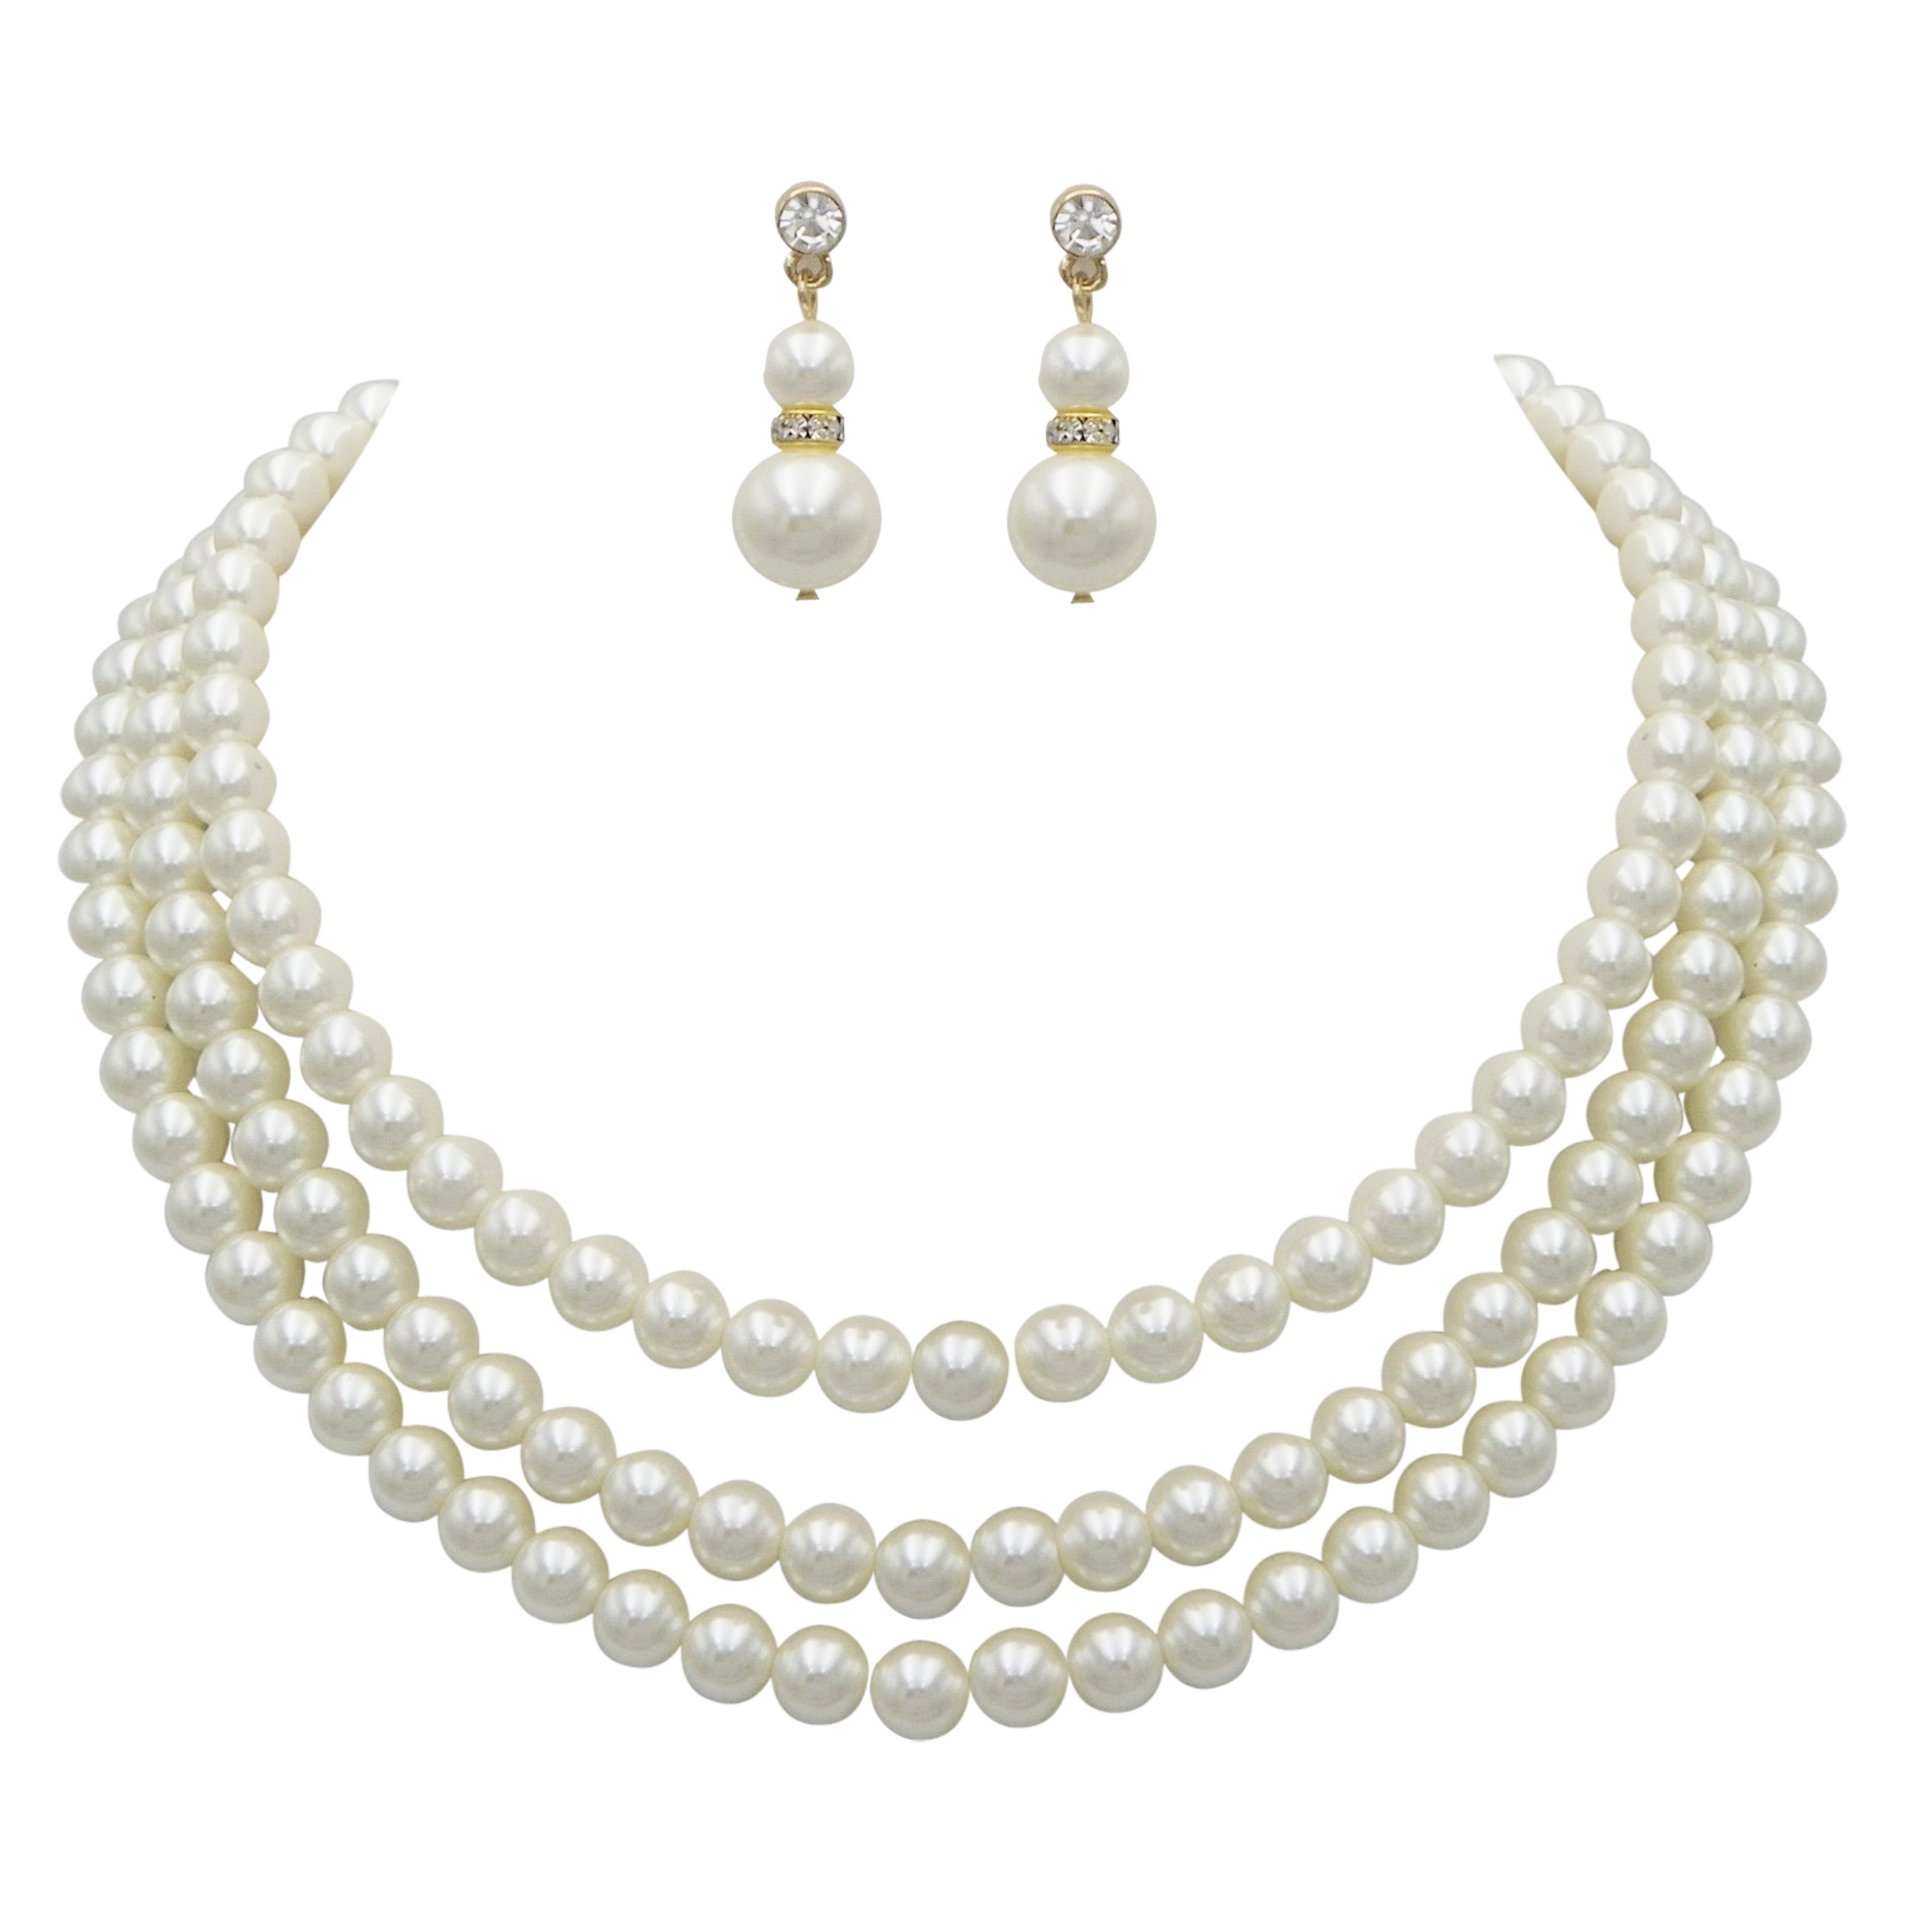 Rosemarie Collections Women's Multi Strand Classic Cream Faux Pearl Necklace and Earrings Jewelry Set